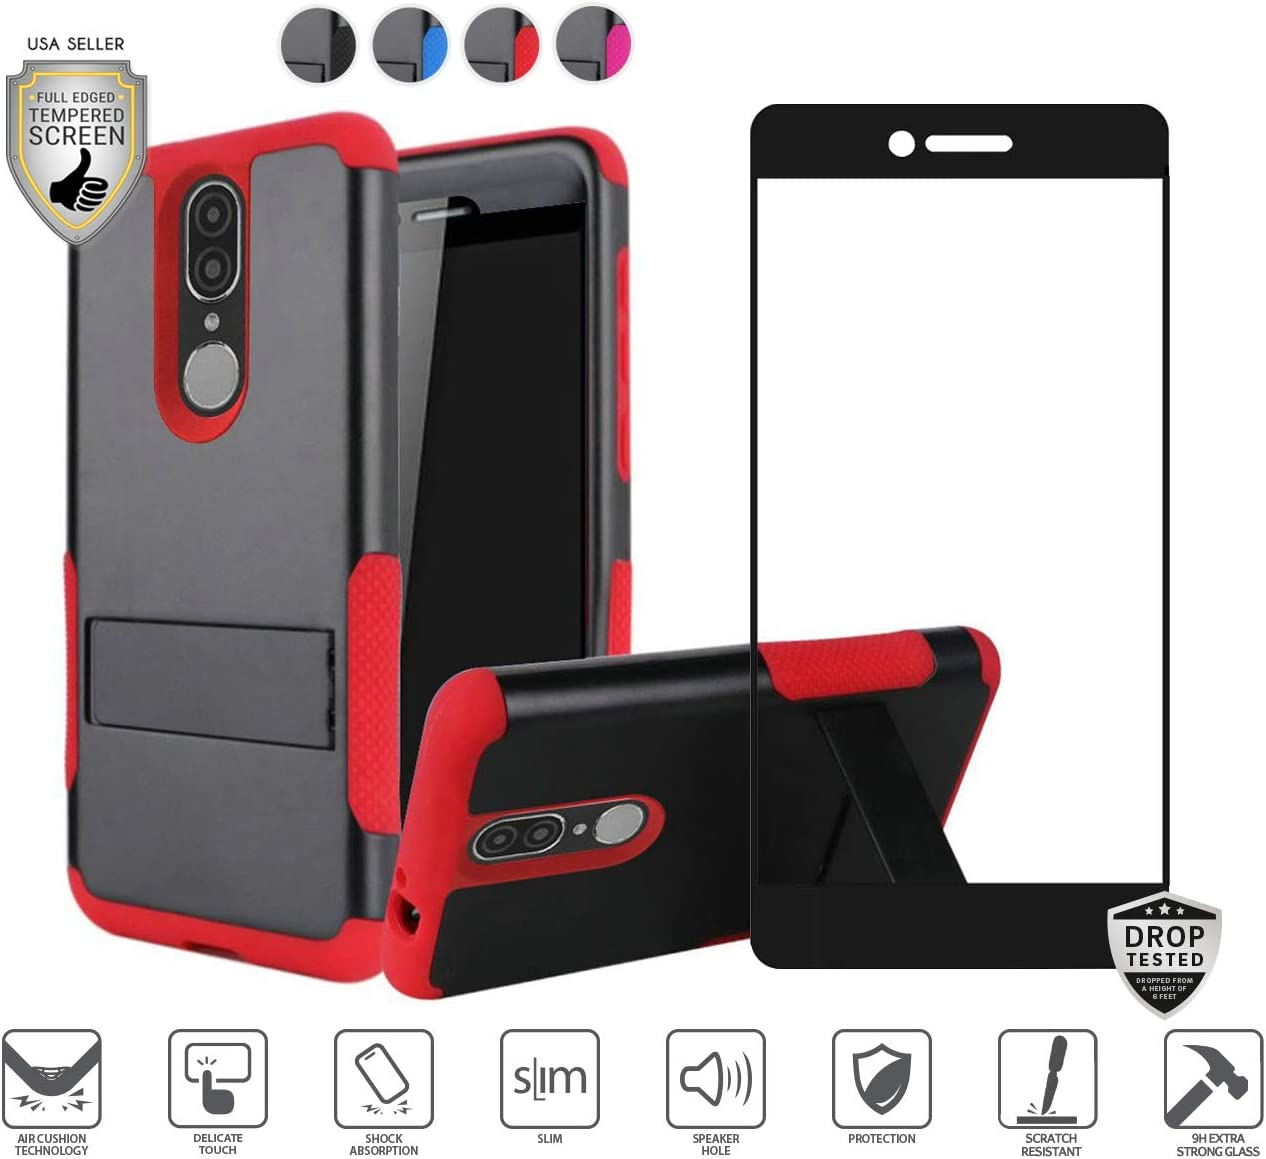 INSERT ONLY IN BLACK NEW PROTECTO CASE